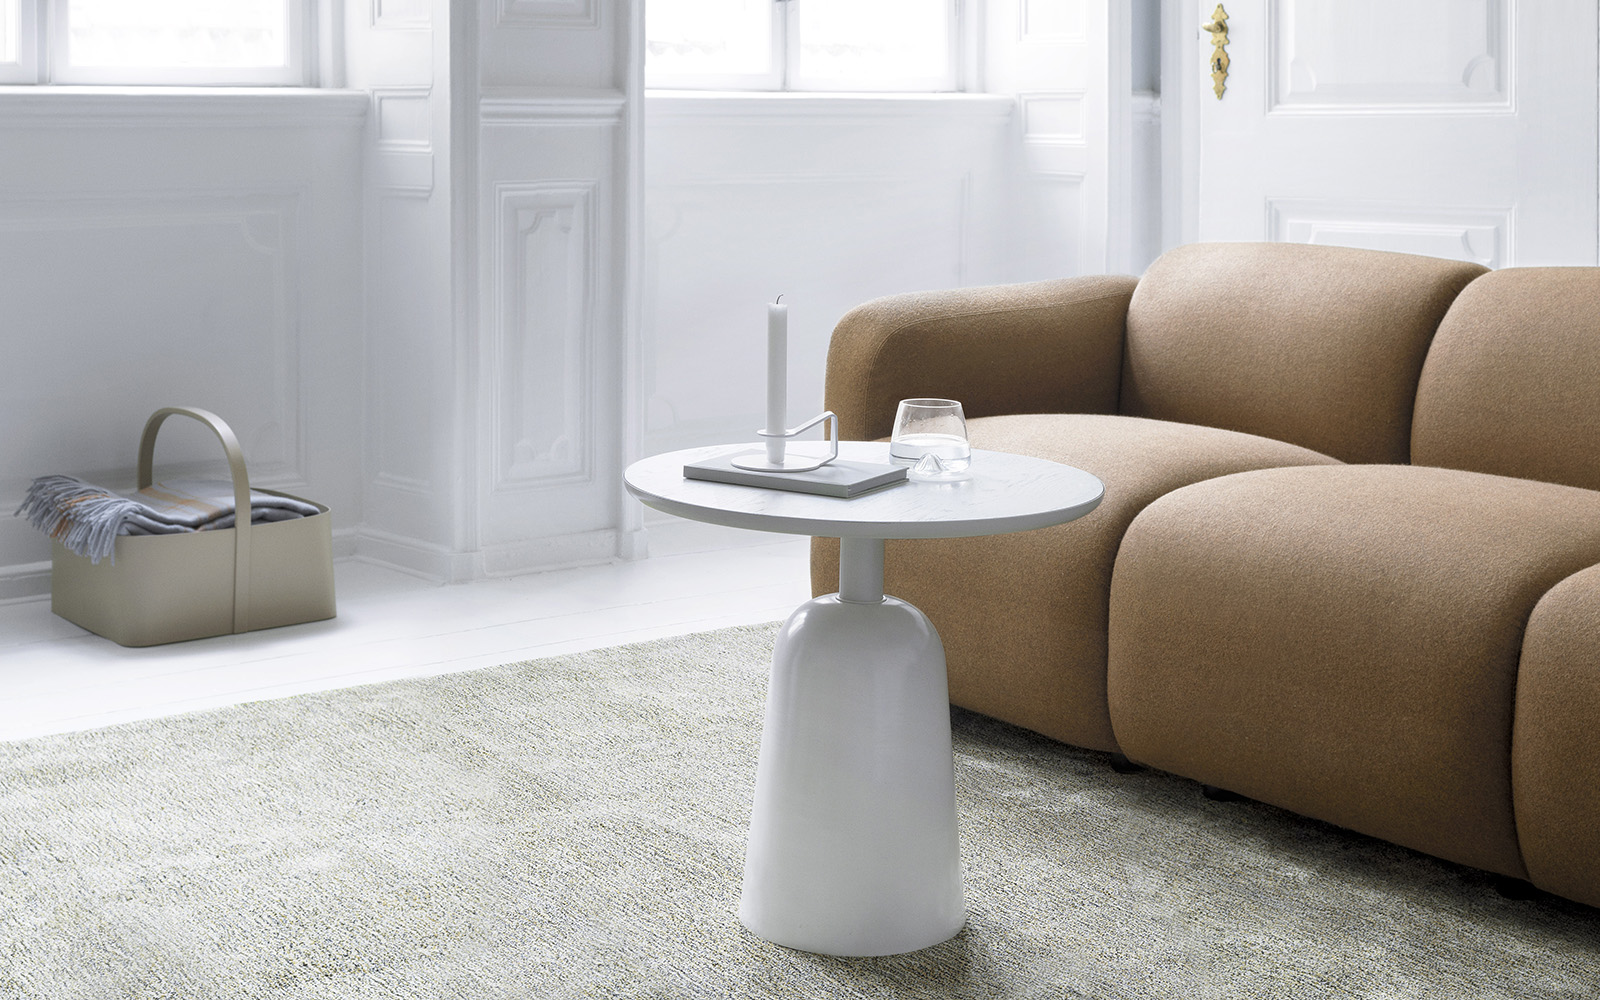 Turn Table Warm grey - Normann Copenhagen